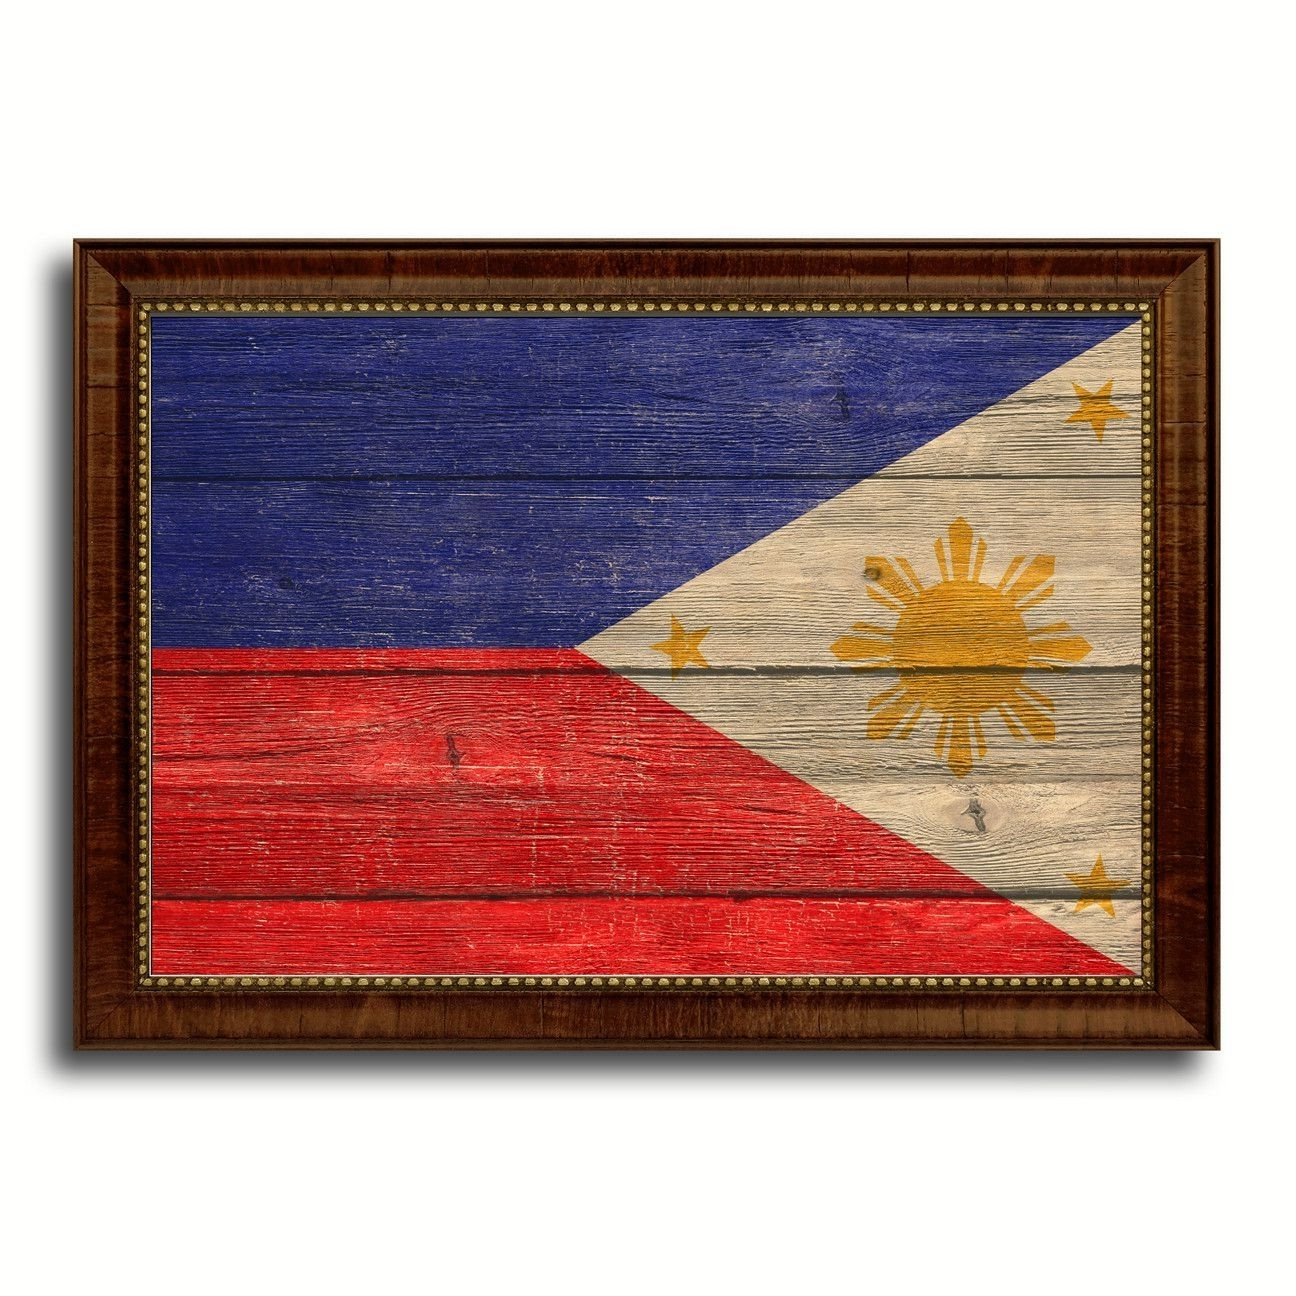 Philippines Country Flag Texture Canvas Print With Brown Custom Pertaining To Famous Canvas Wall Art Of Philippines (View 10 of 15)